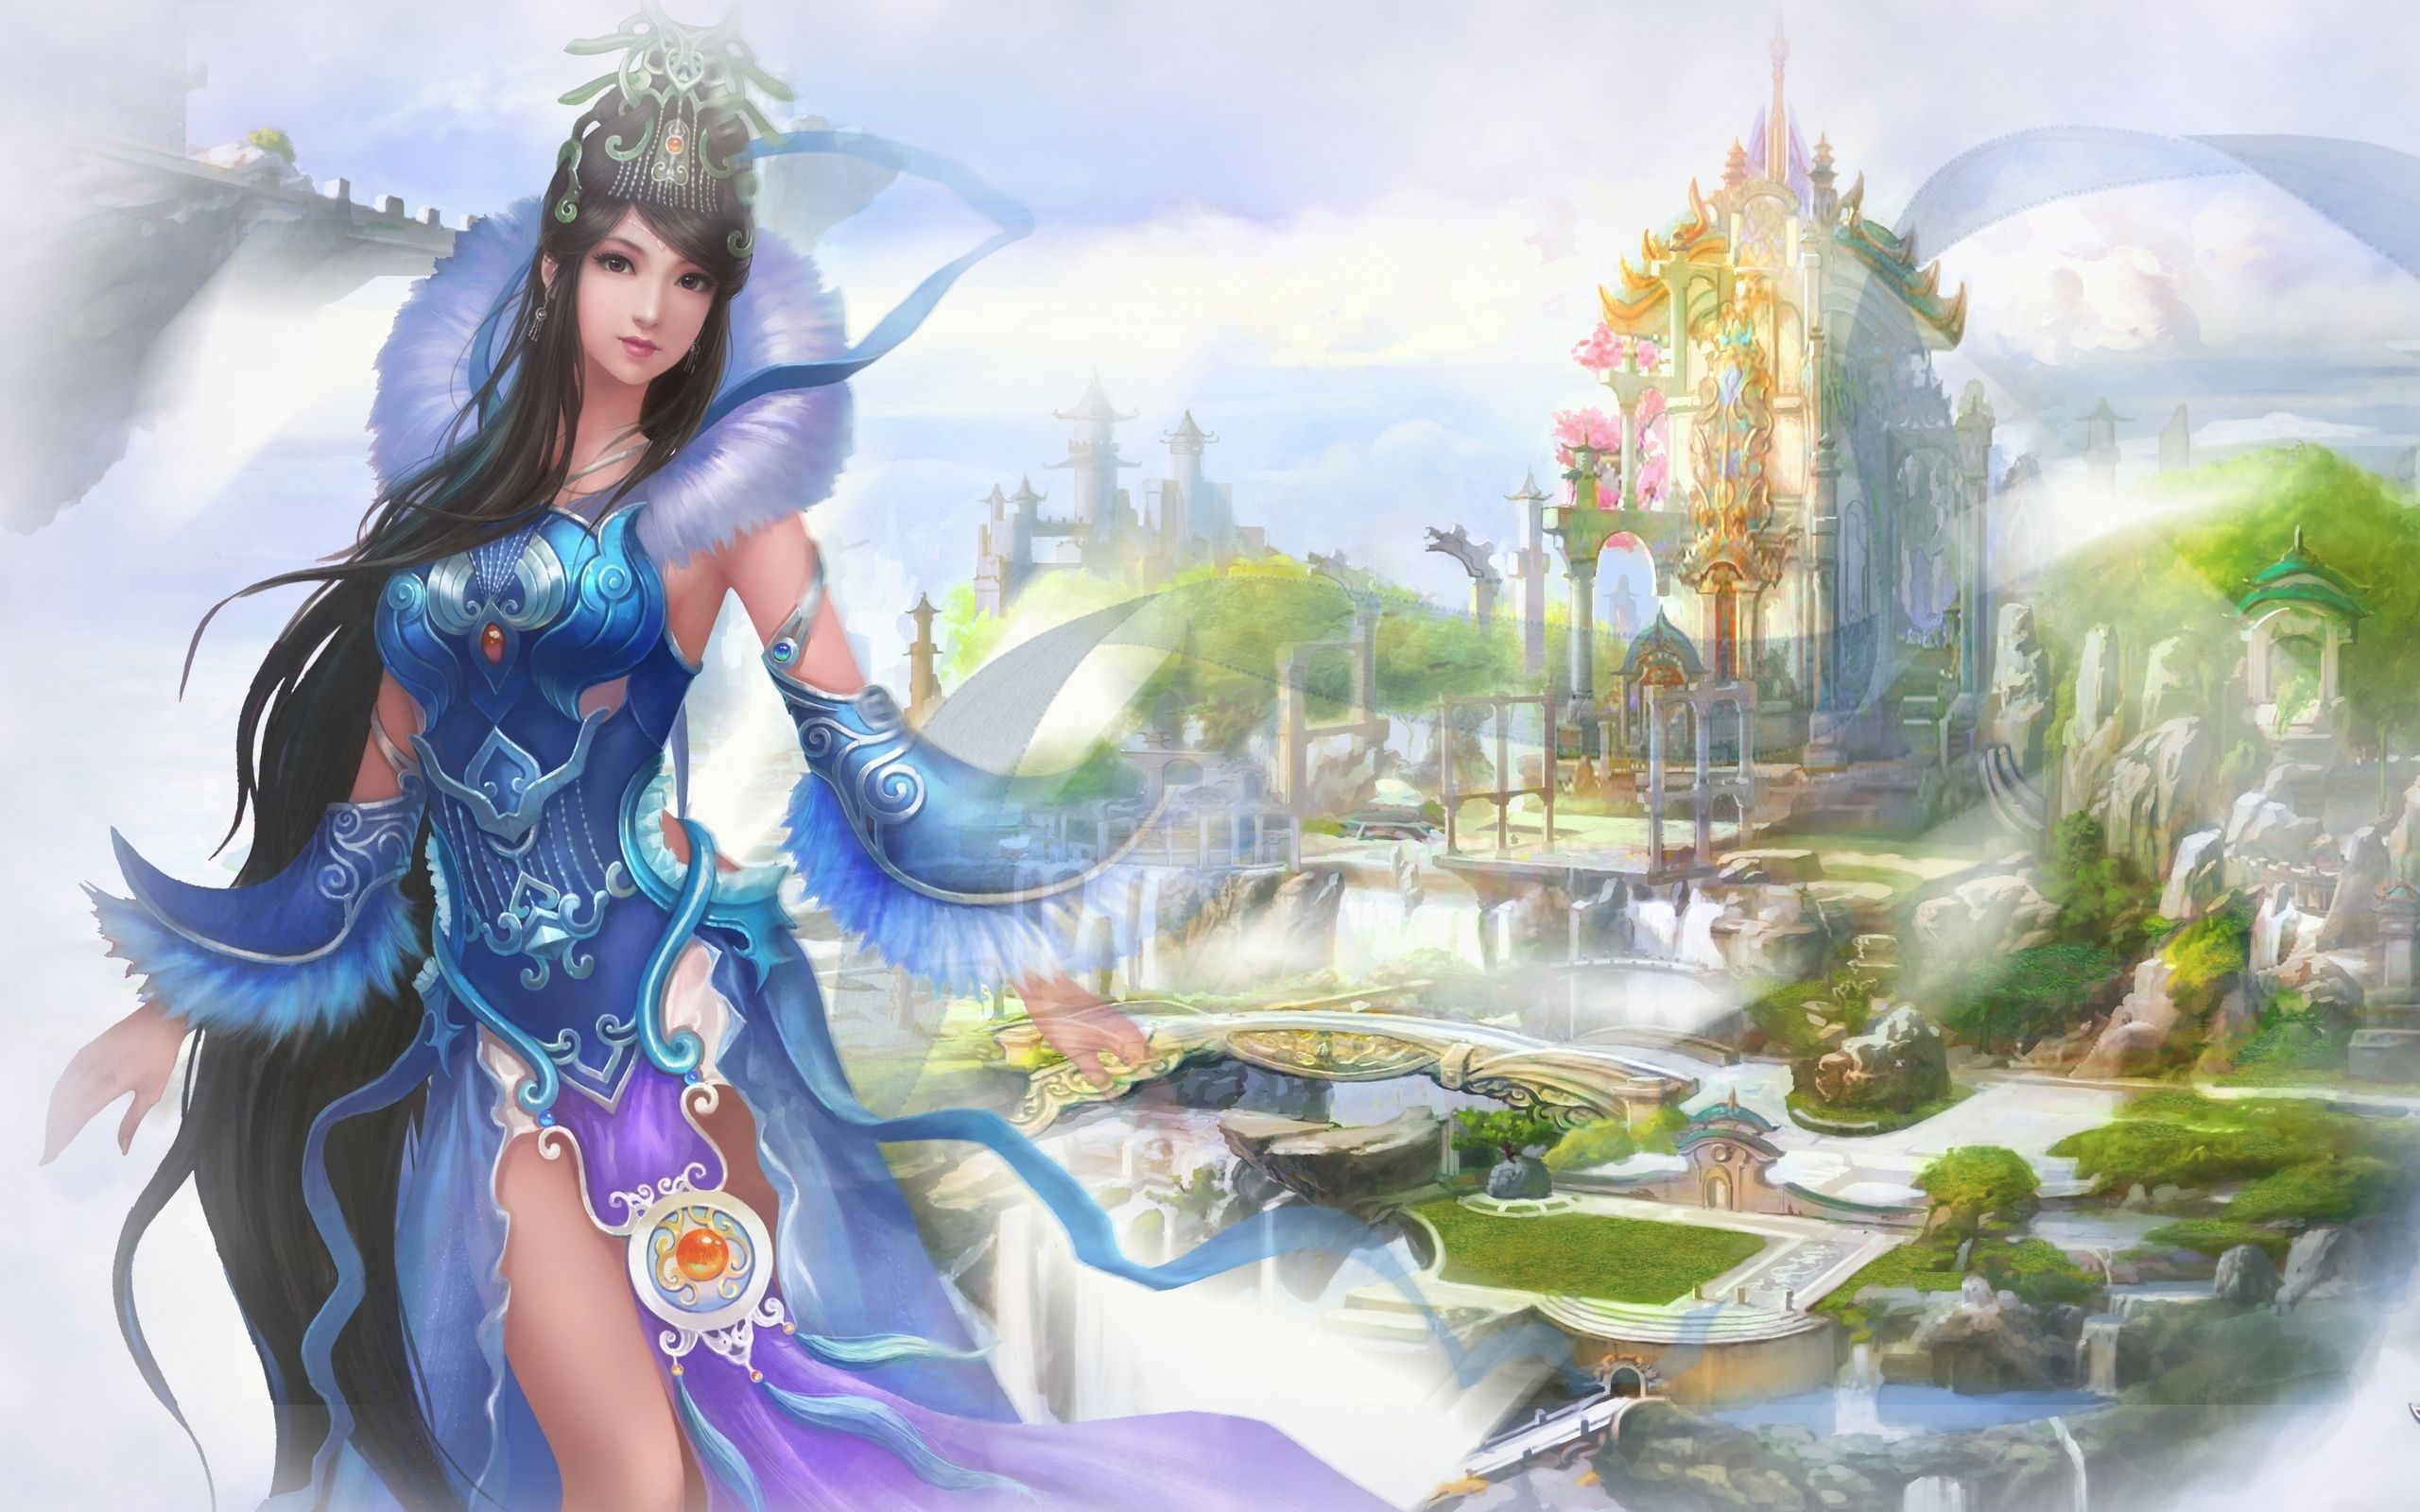 jade dynasty perfect world mmorpg china game wallpapers fantasy